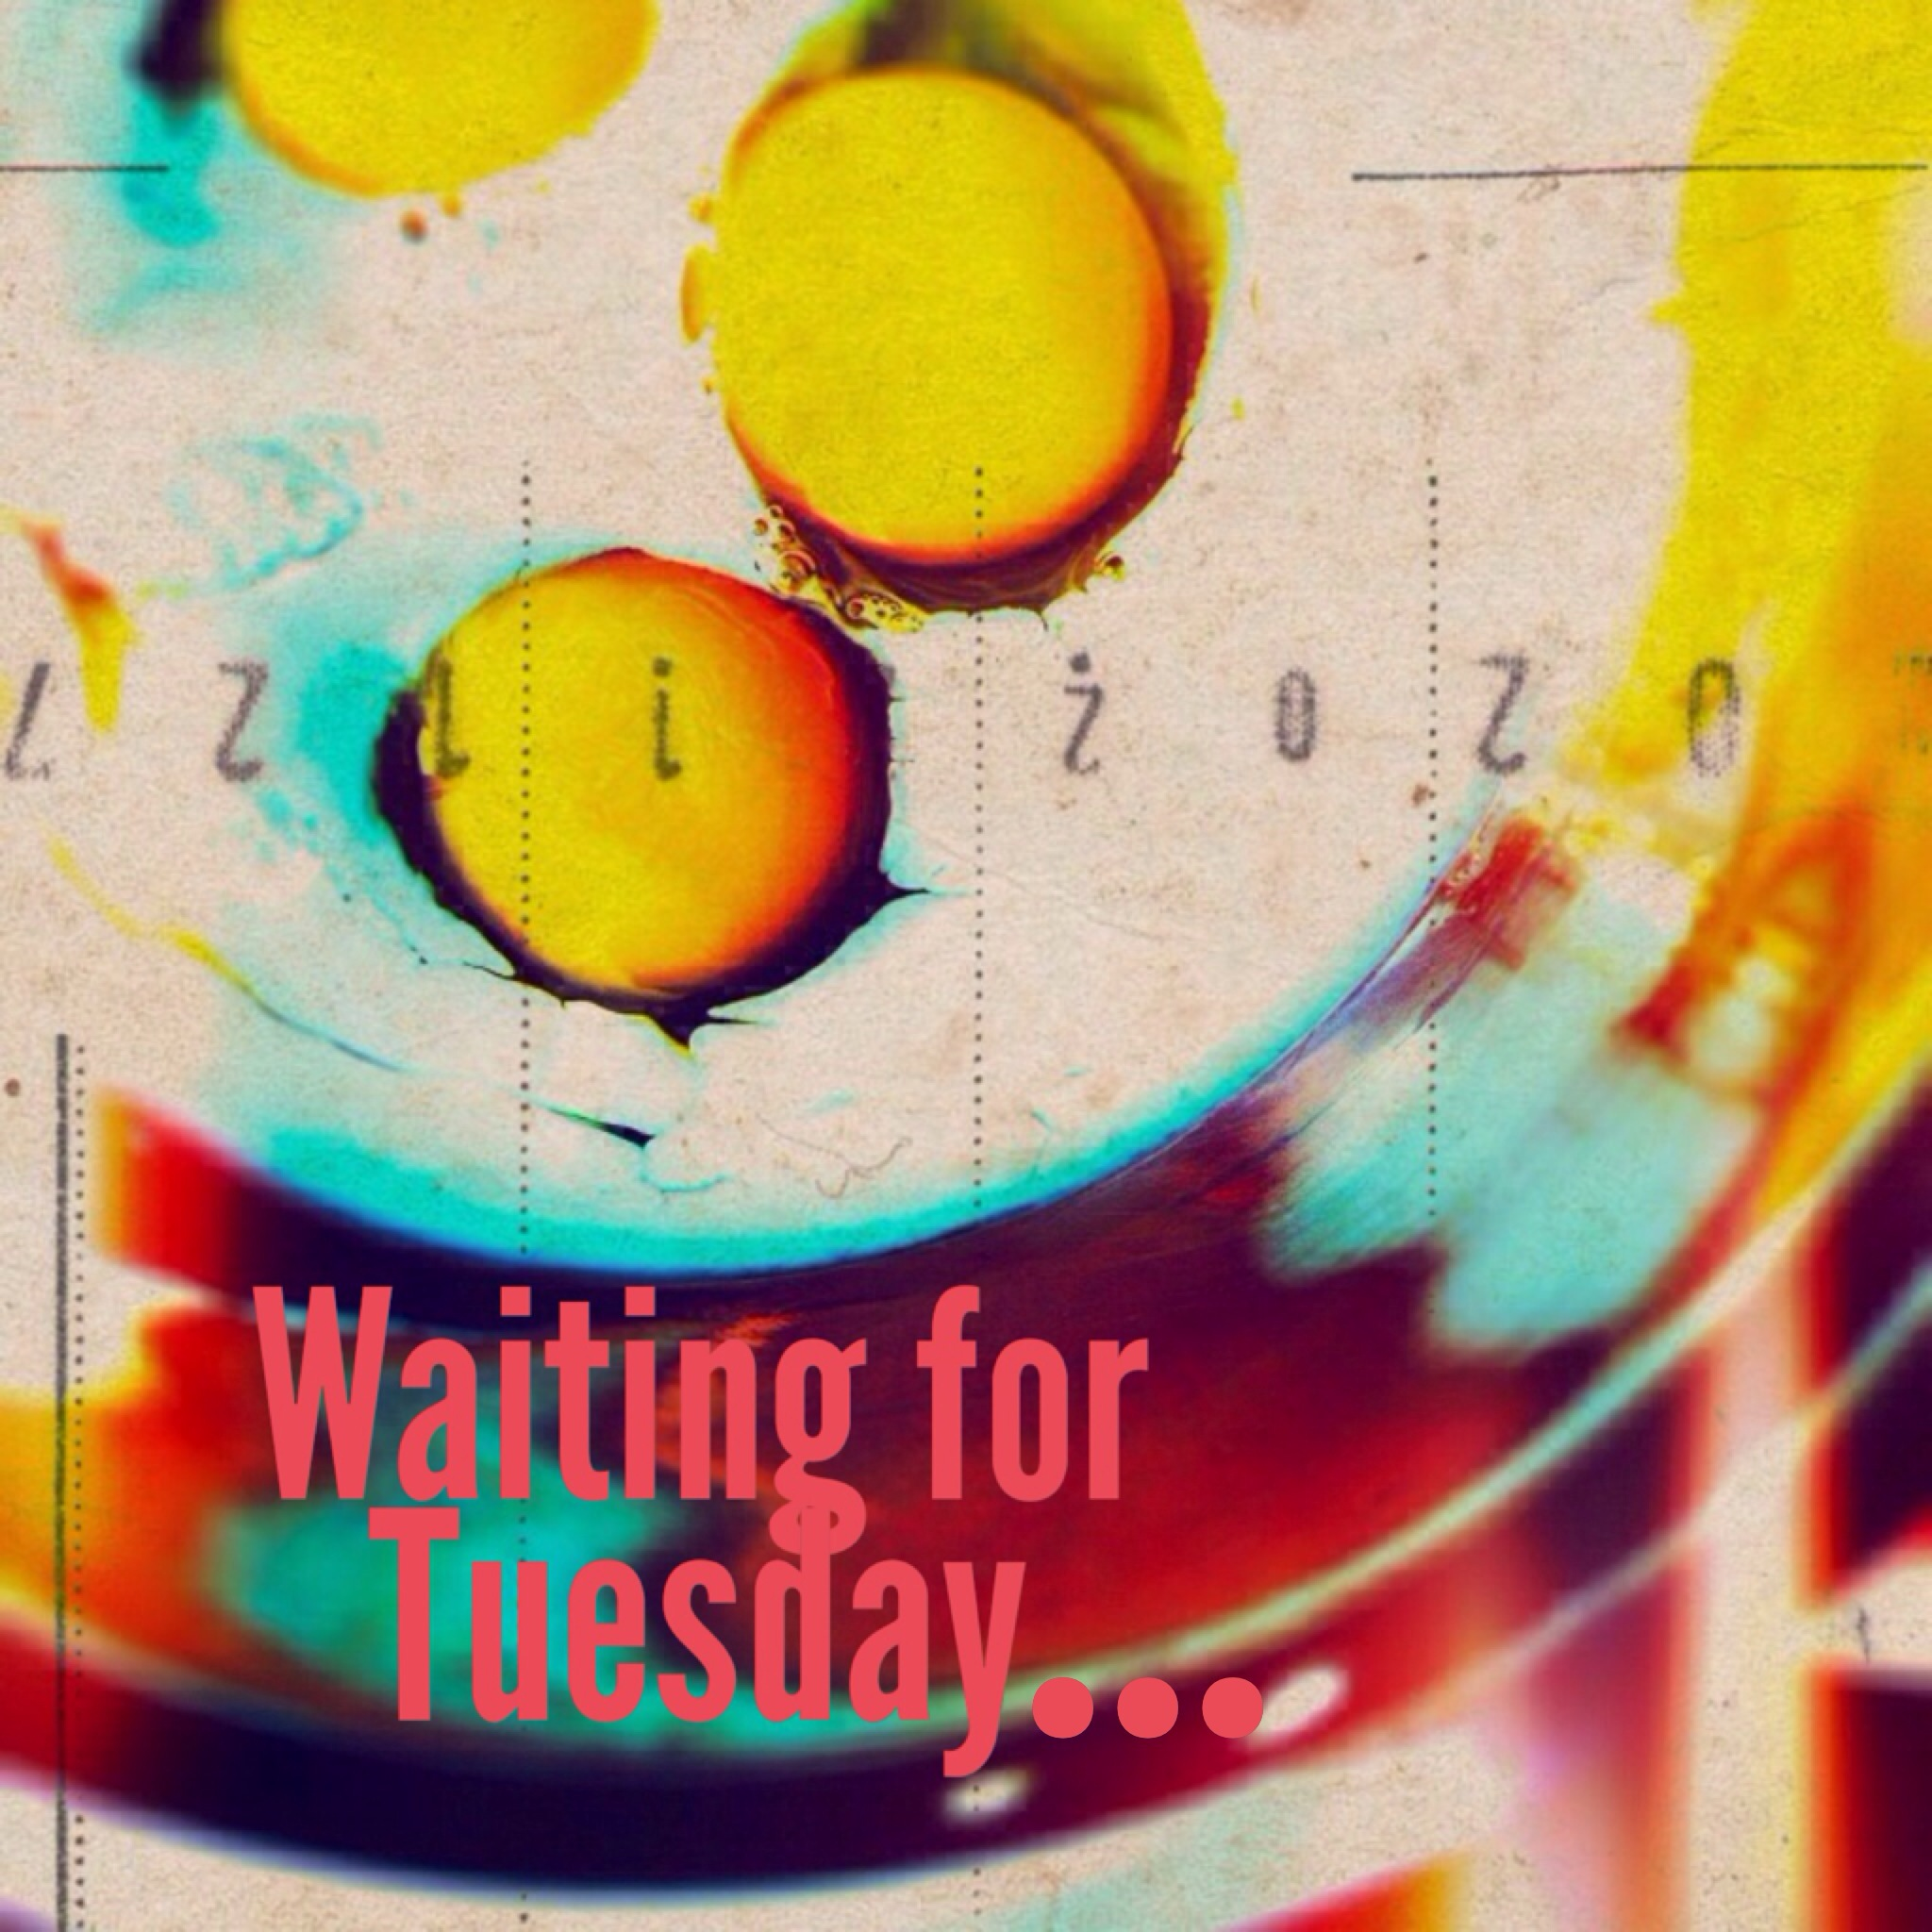 Waiting for Tuesday... Breakfast!